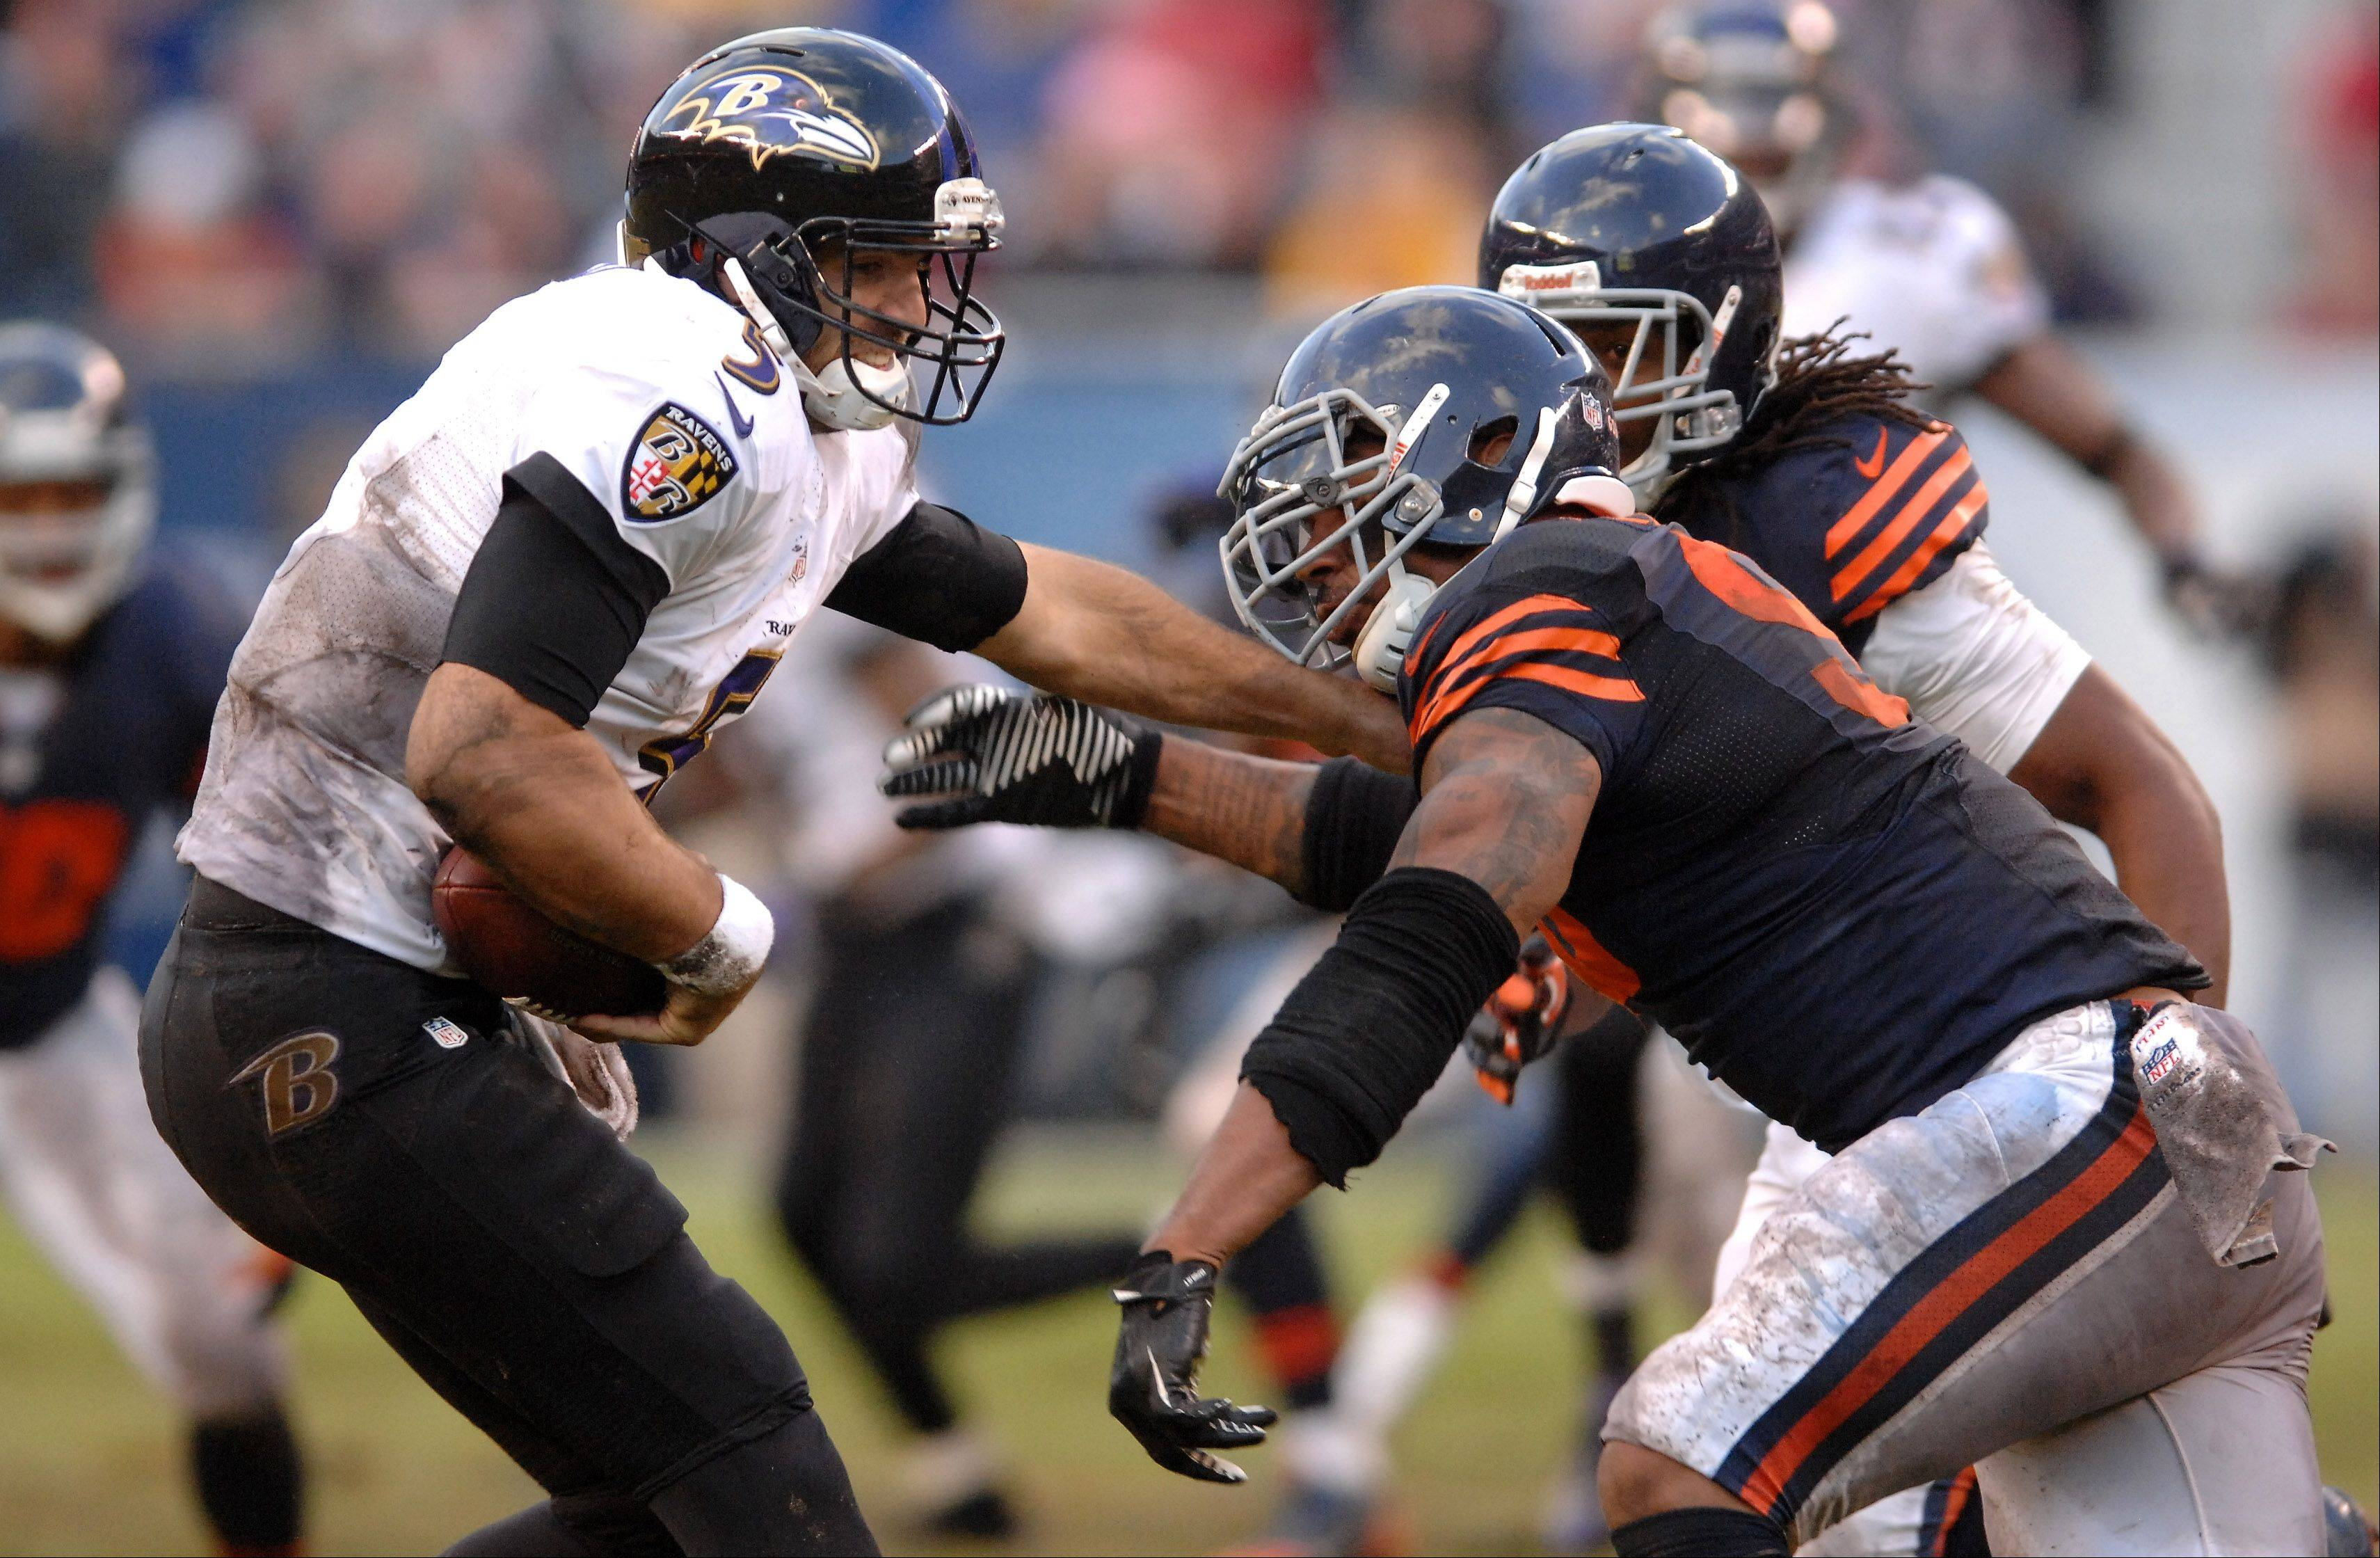 Chicago Bears defensive end Julius Peppers (90) sacks Baltimore Ravens quarterback Joe Flacco (5) during Sunday's game in Chicago.